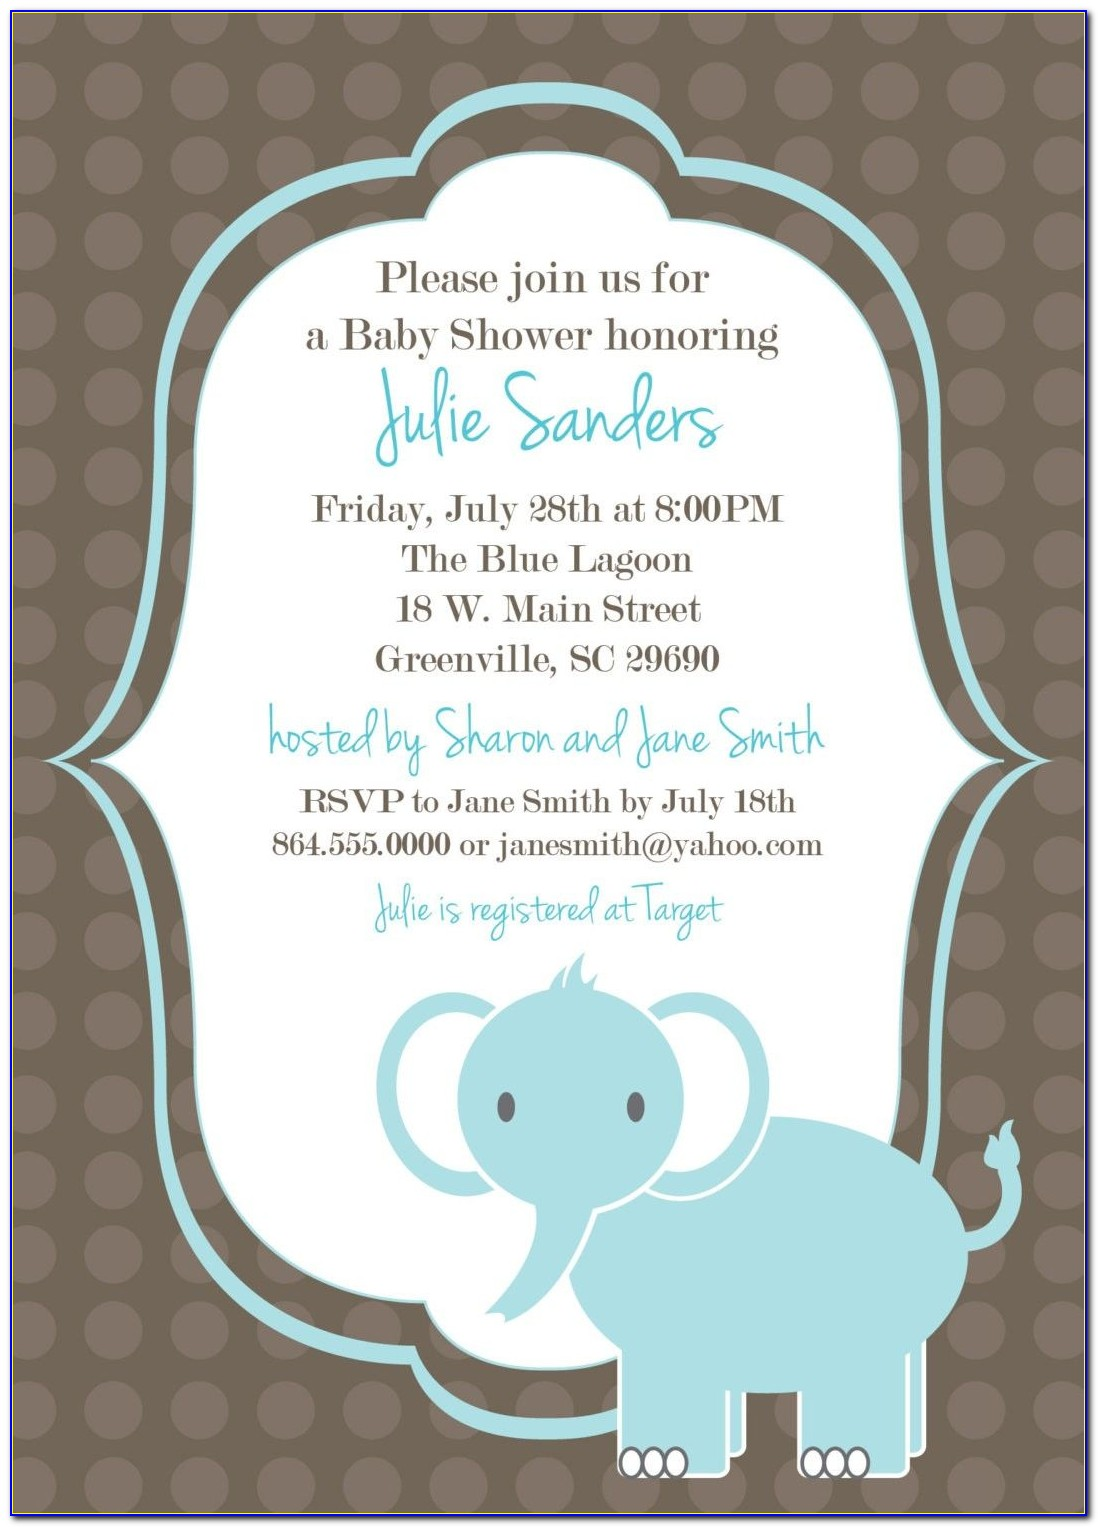 Baby Shower Invitations Microsoft Word Template